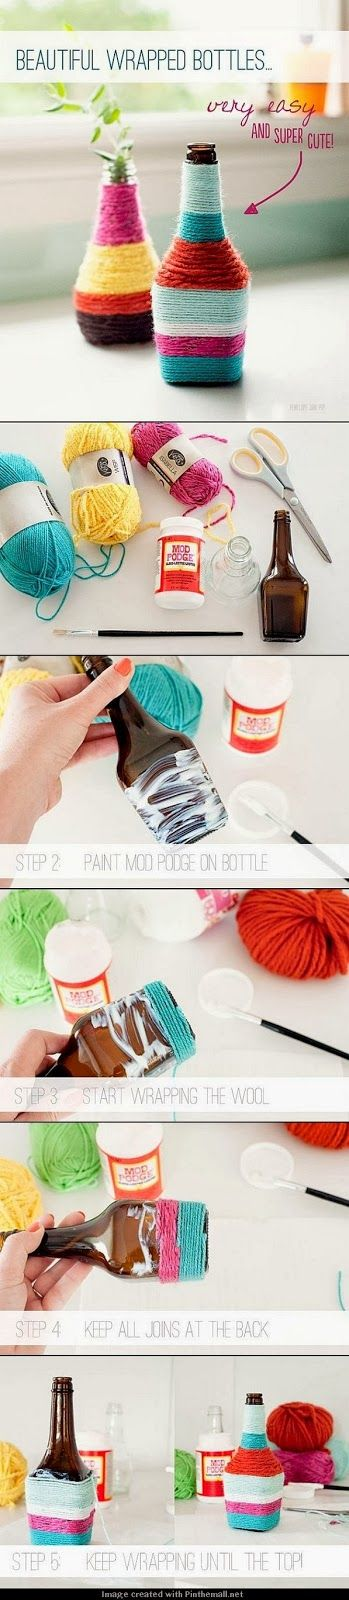 Beautiful Wrapped Bottles DIY #make #craft